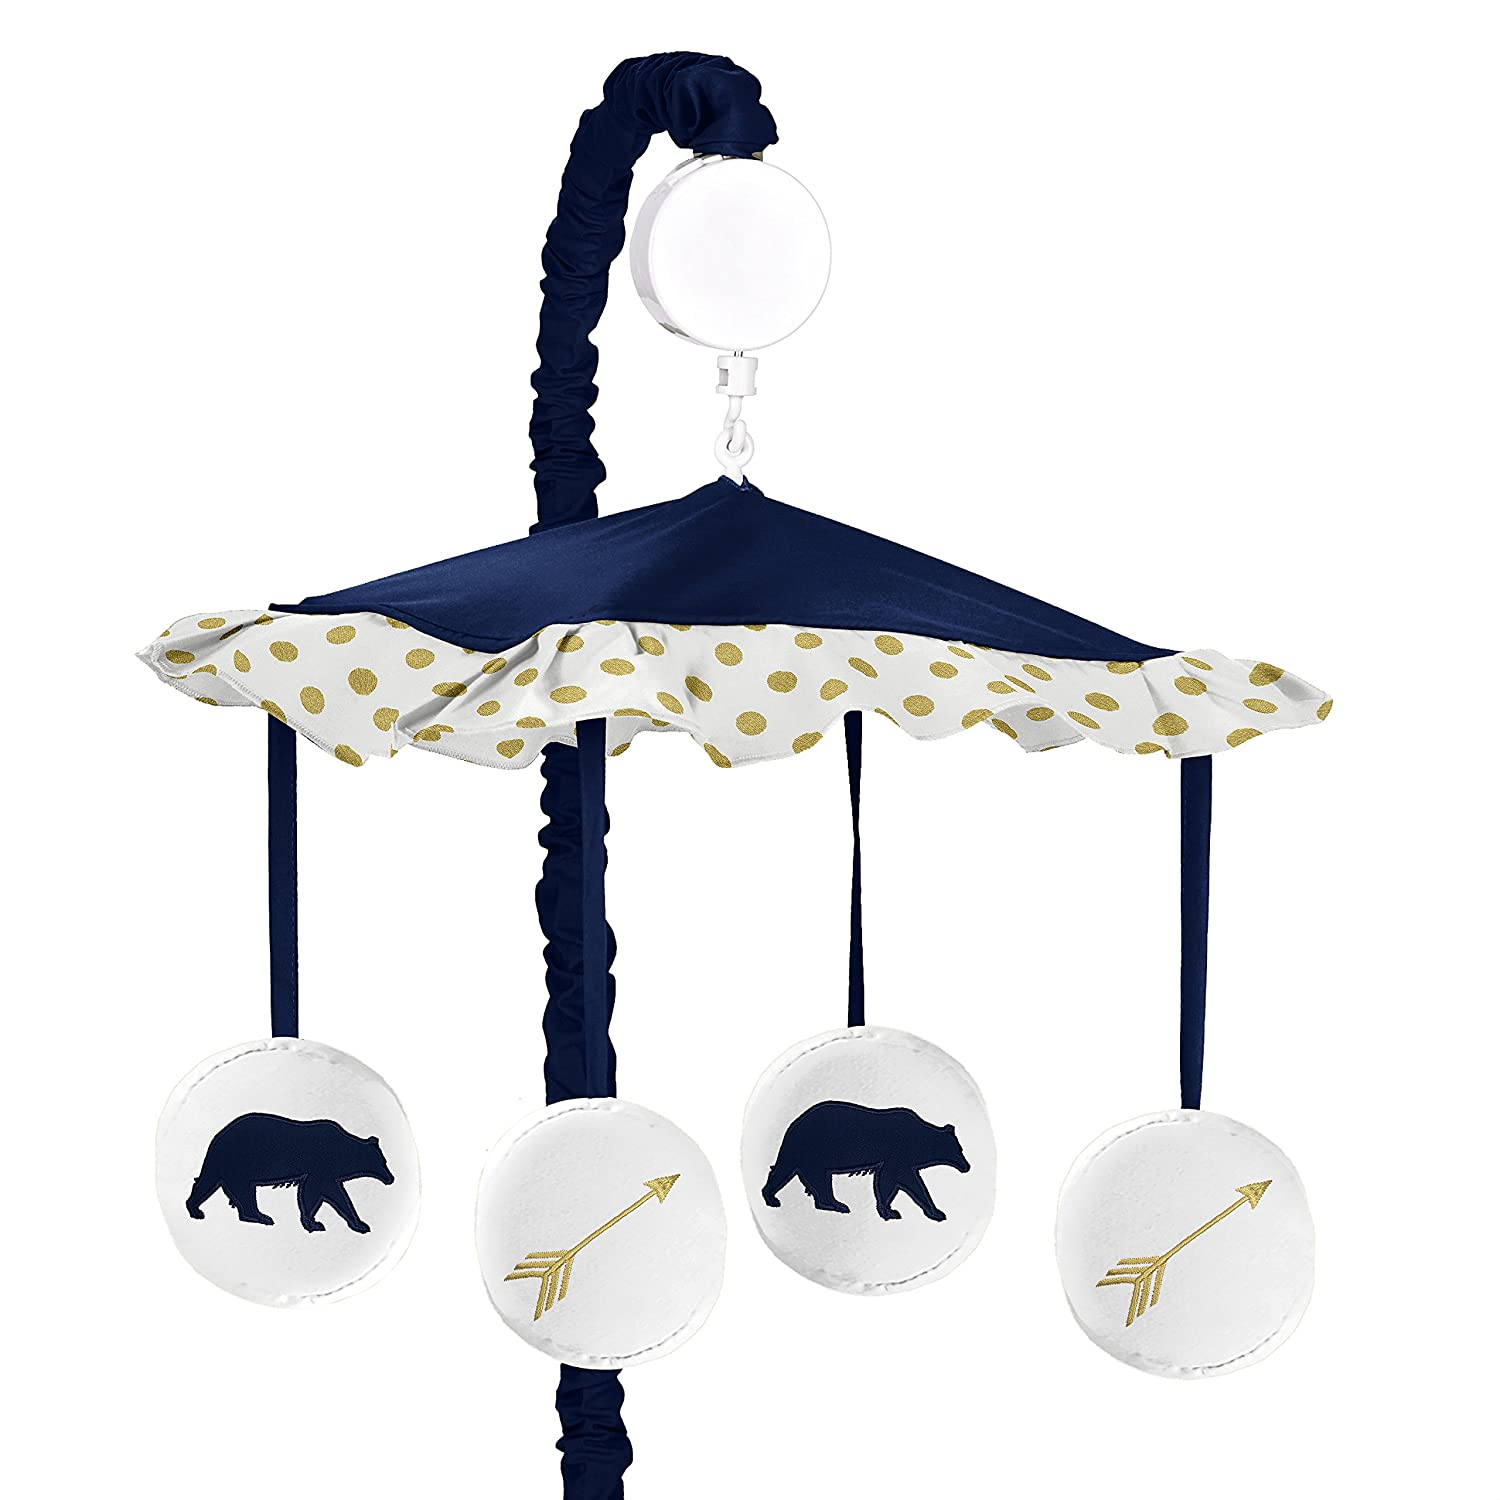 Navy Blue, Gold, and White Musical Baby Crib Mobile for Big Bear Collection by Sweet Jojo Designs